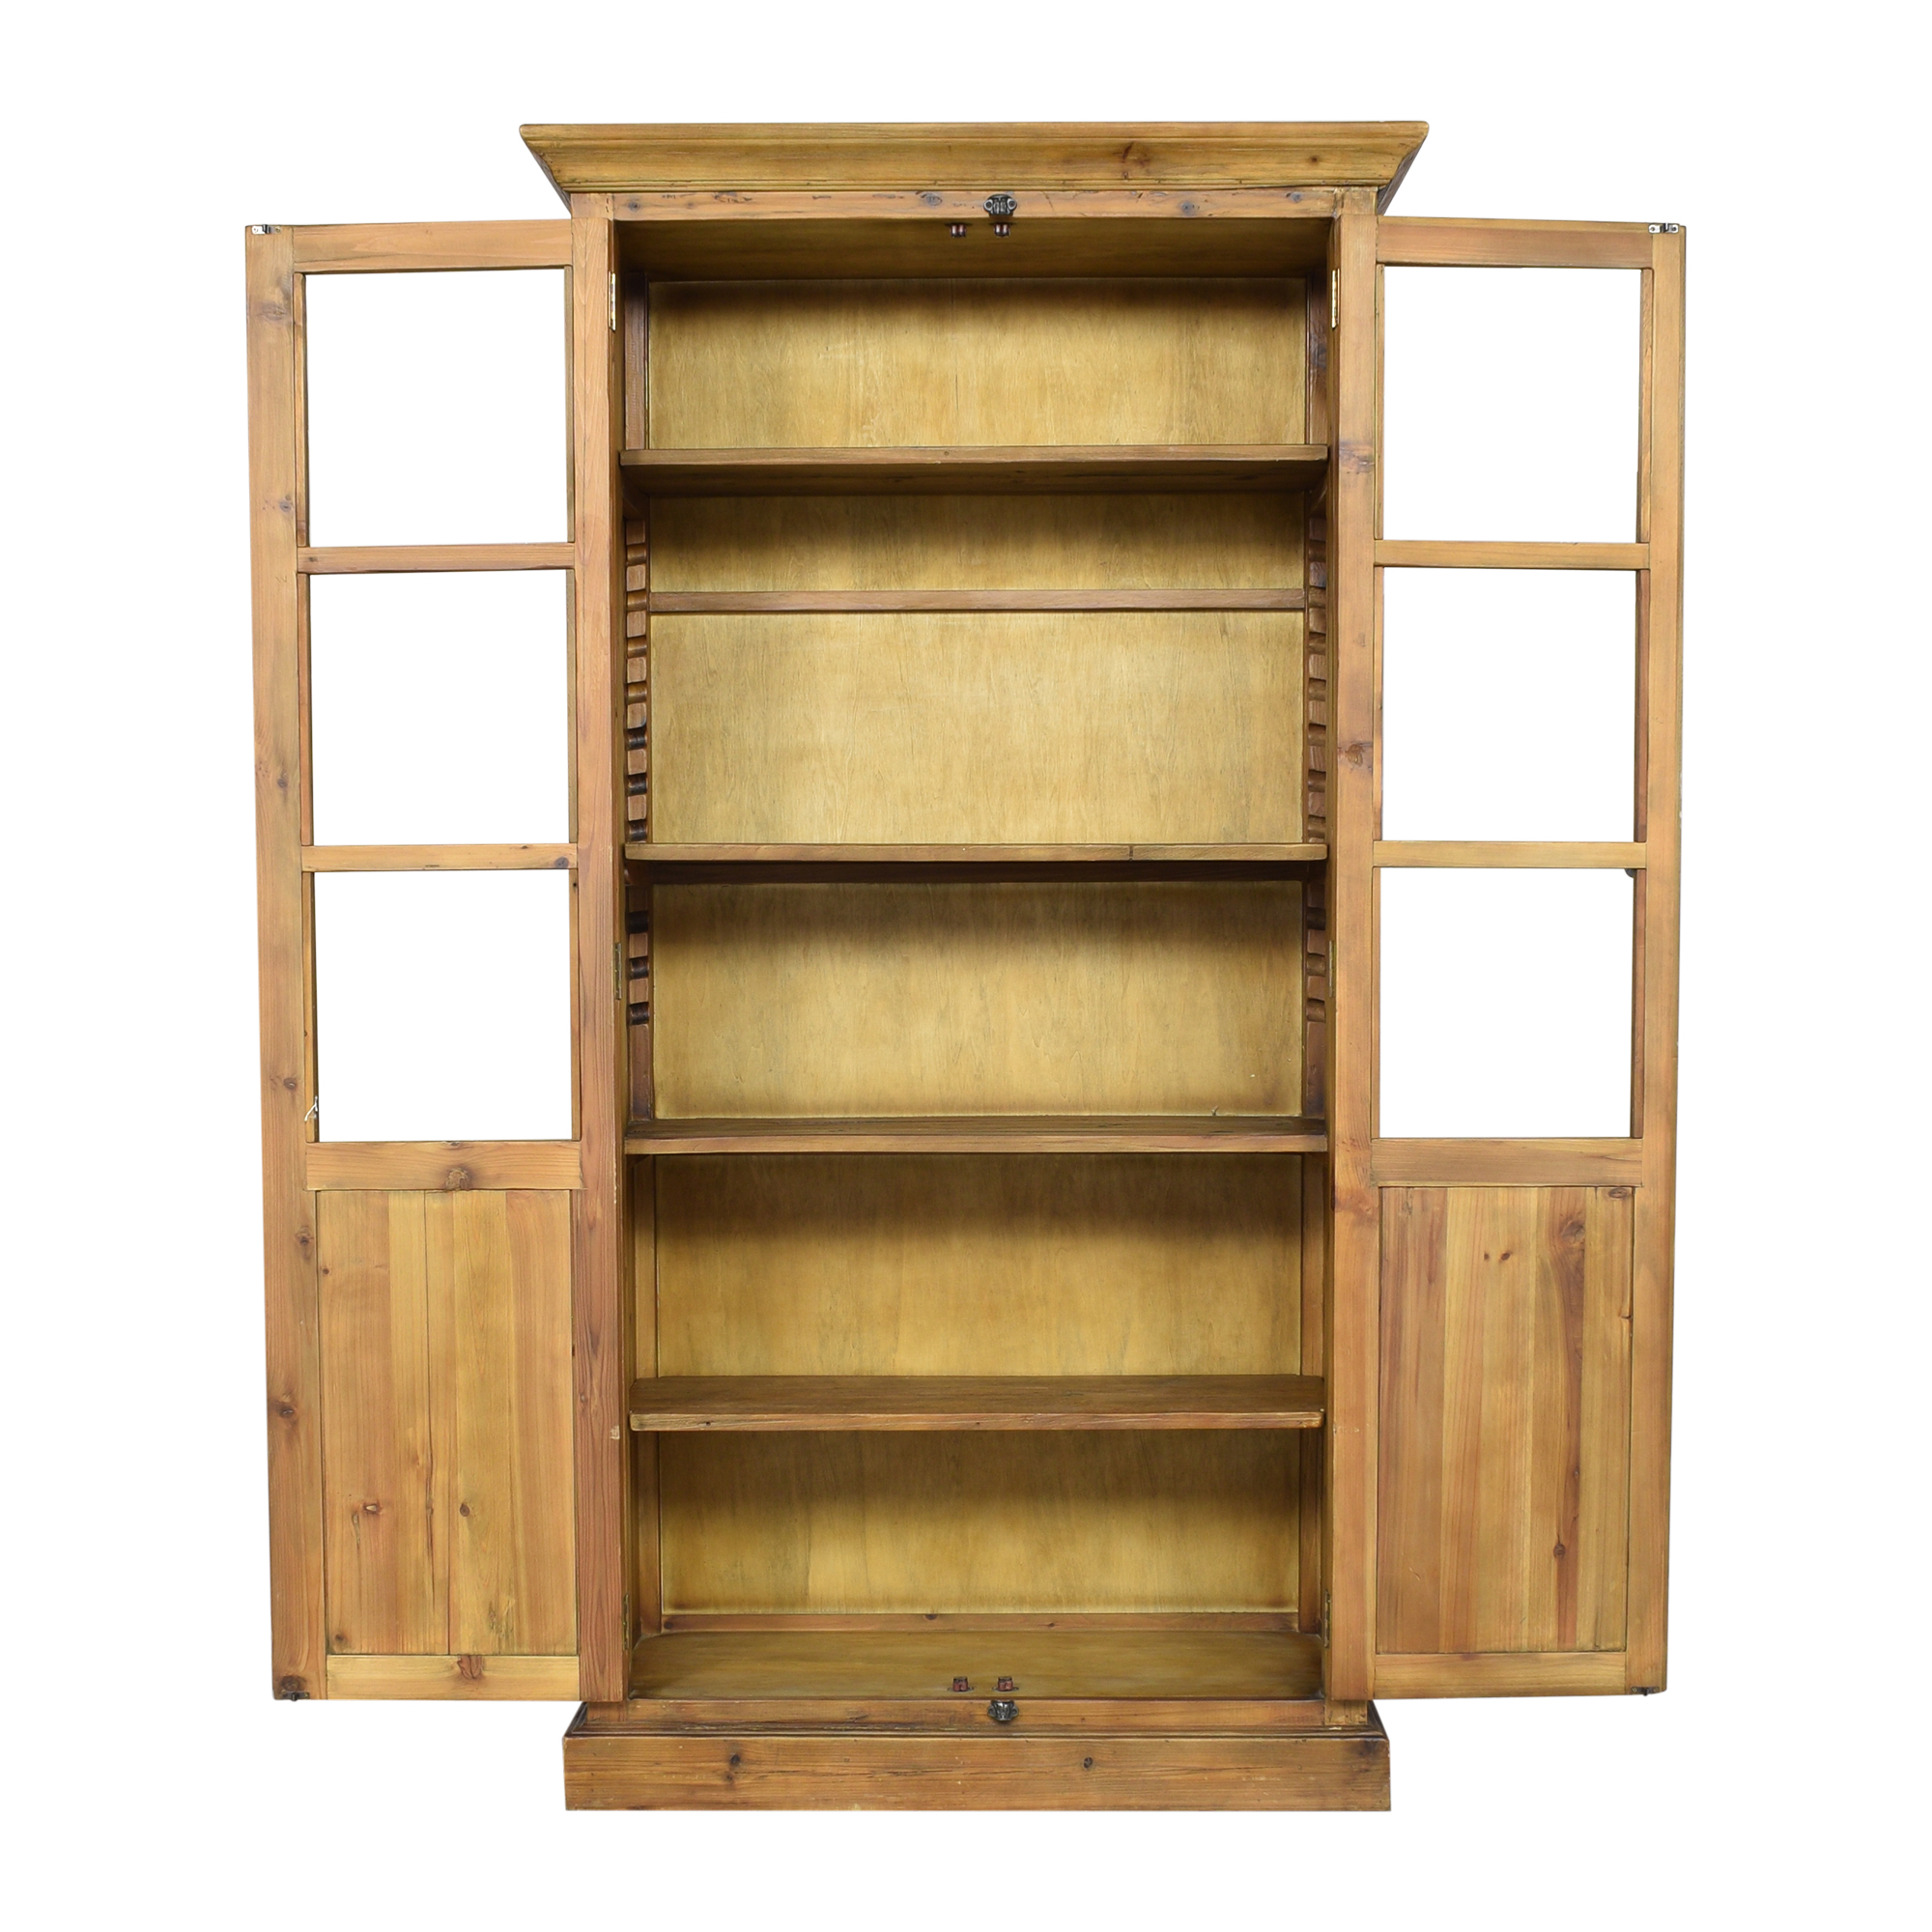 buy Crate & Barrel Bedford Tall Cabinet Crate & Barrel Cabinets & Sideboards